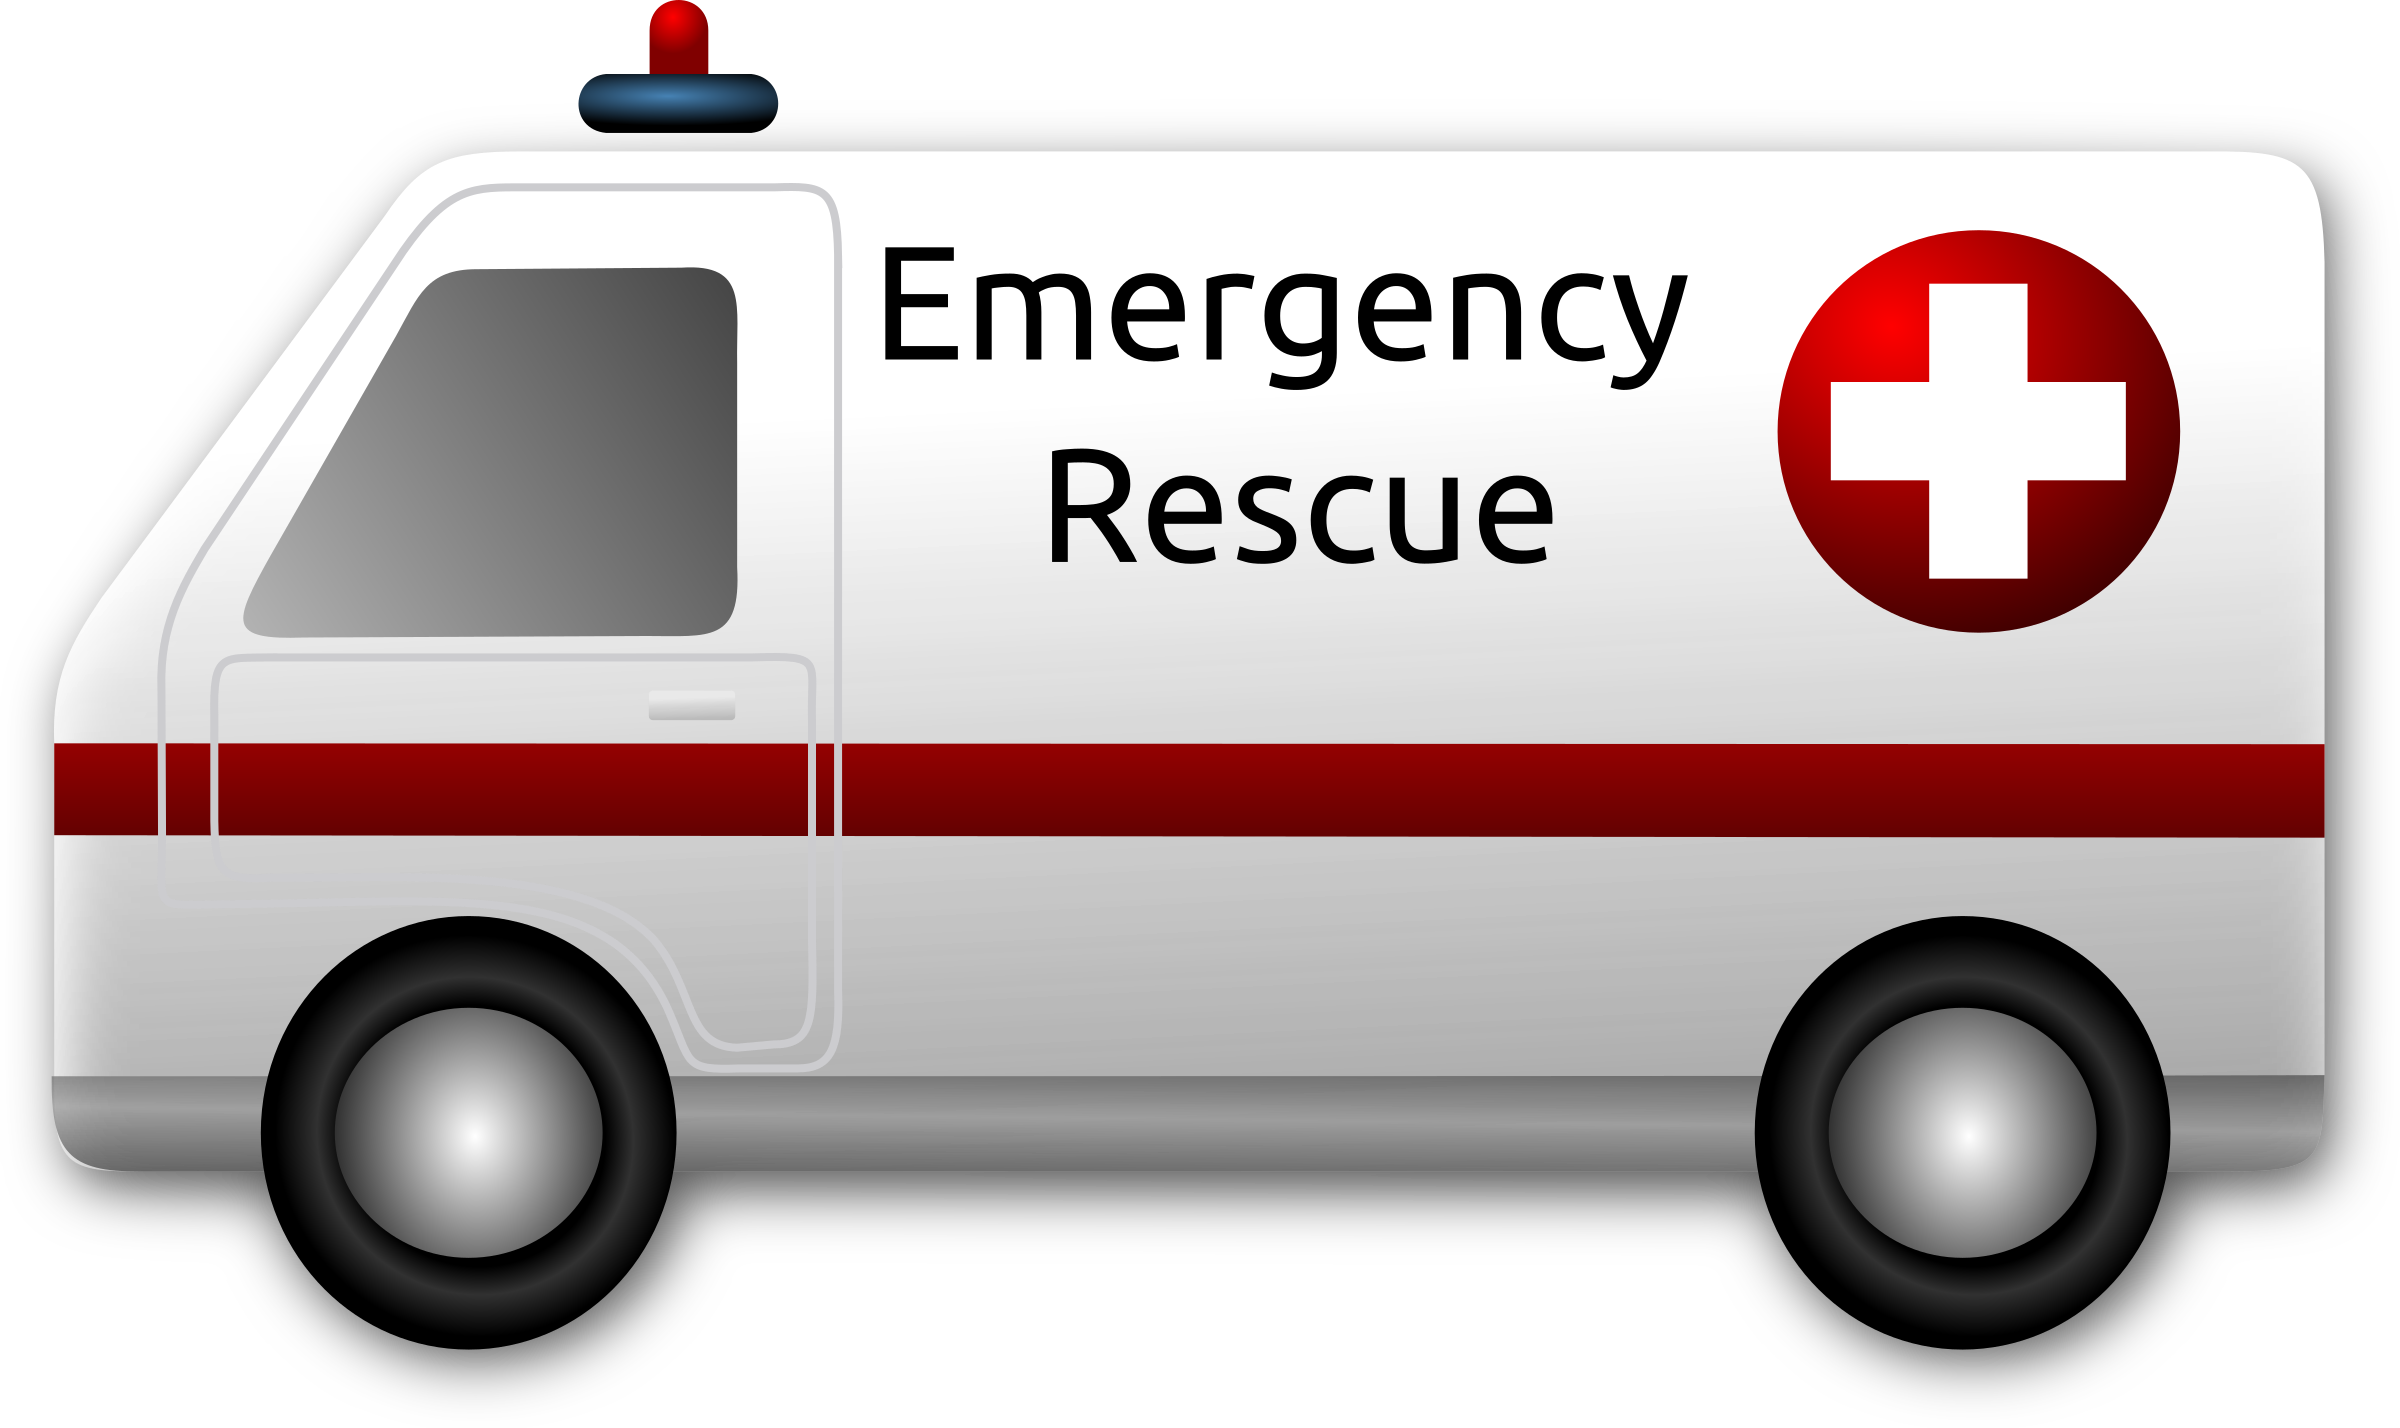 Emergency Rescue Ambulance by Merlin2525